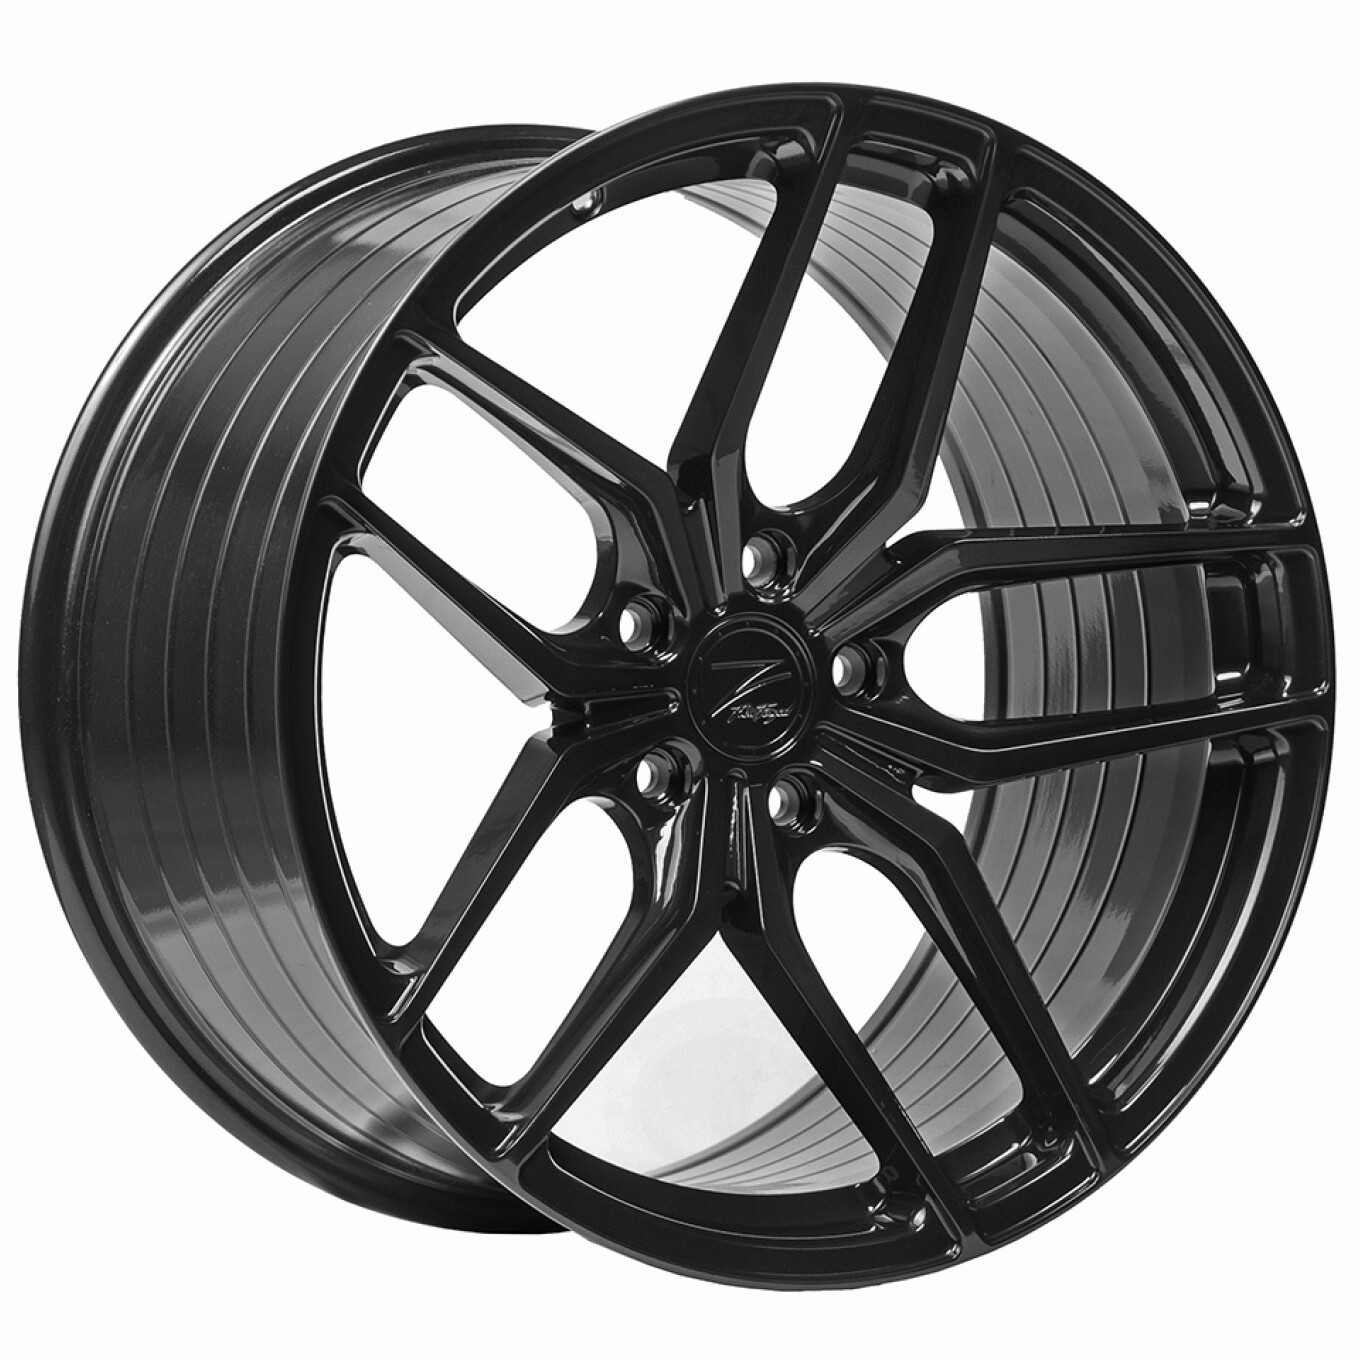 Z-Performance ZP2.1 10x20 ET48 5x112 FlowForged Gloss Black